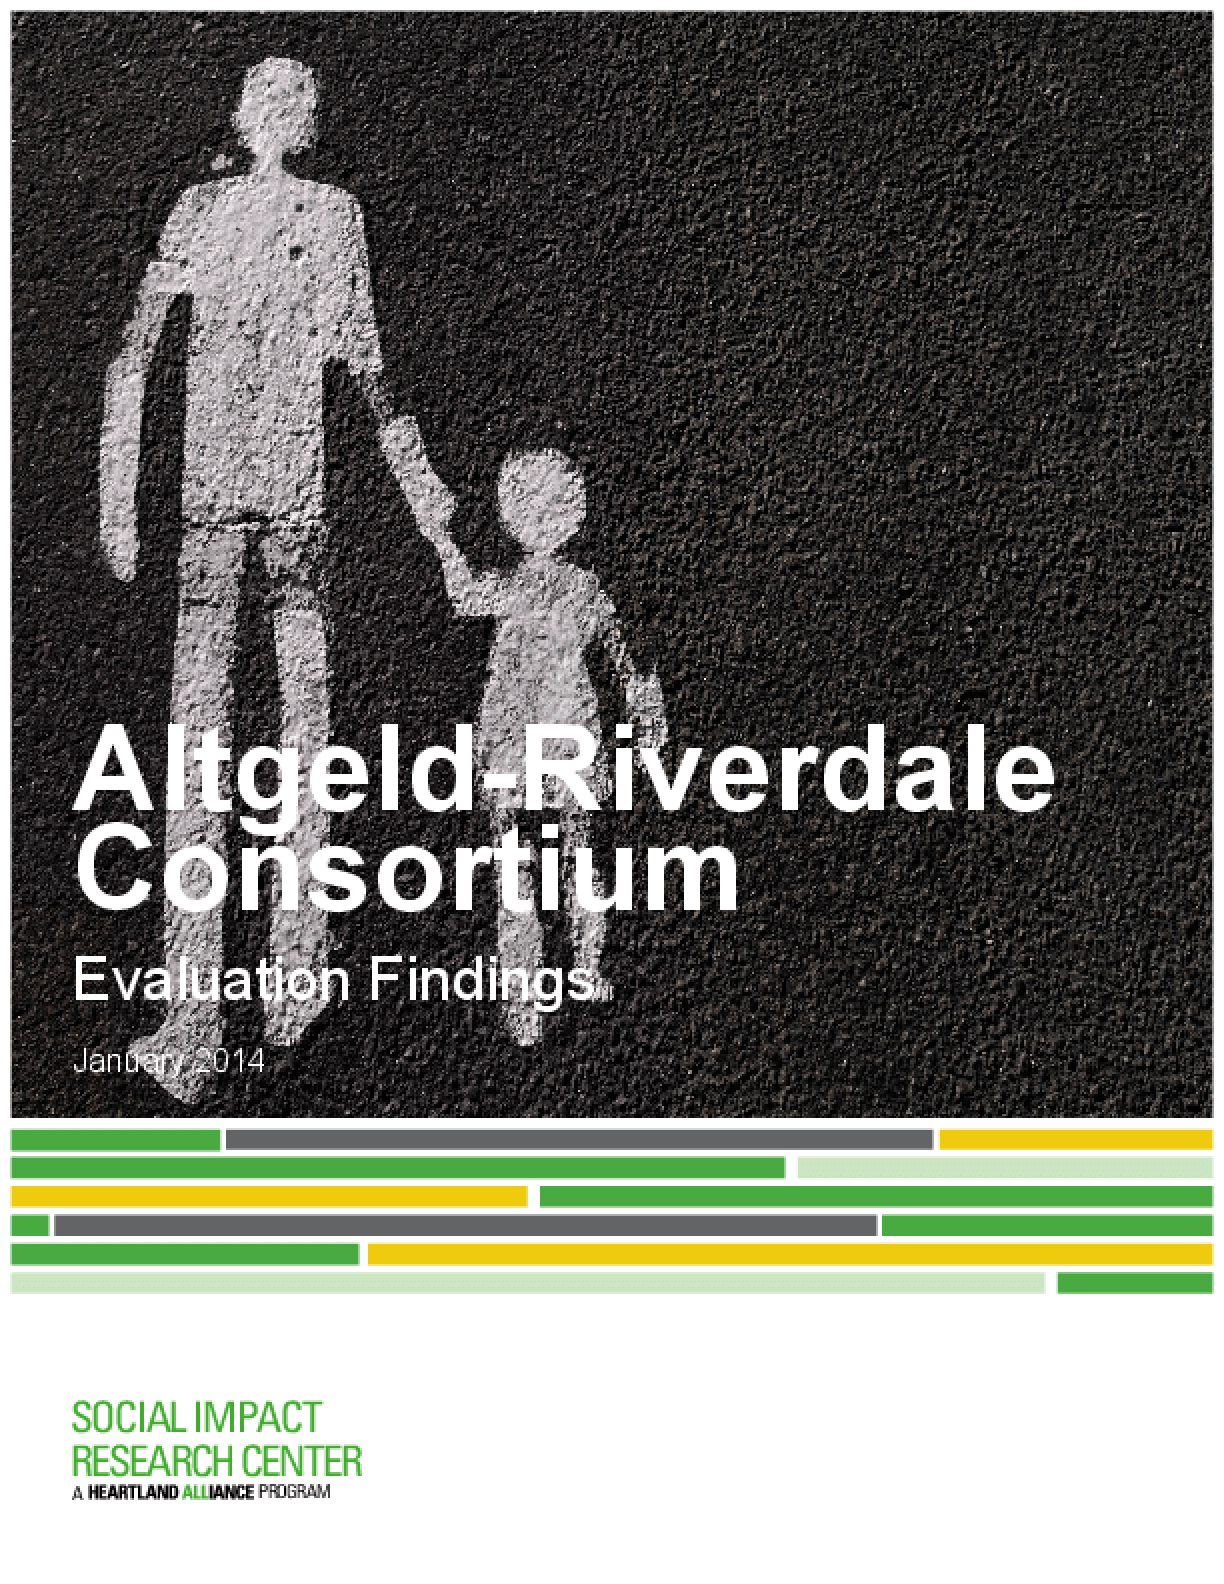 Altgeld-Riverdale Consortium: Evaluation Findings